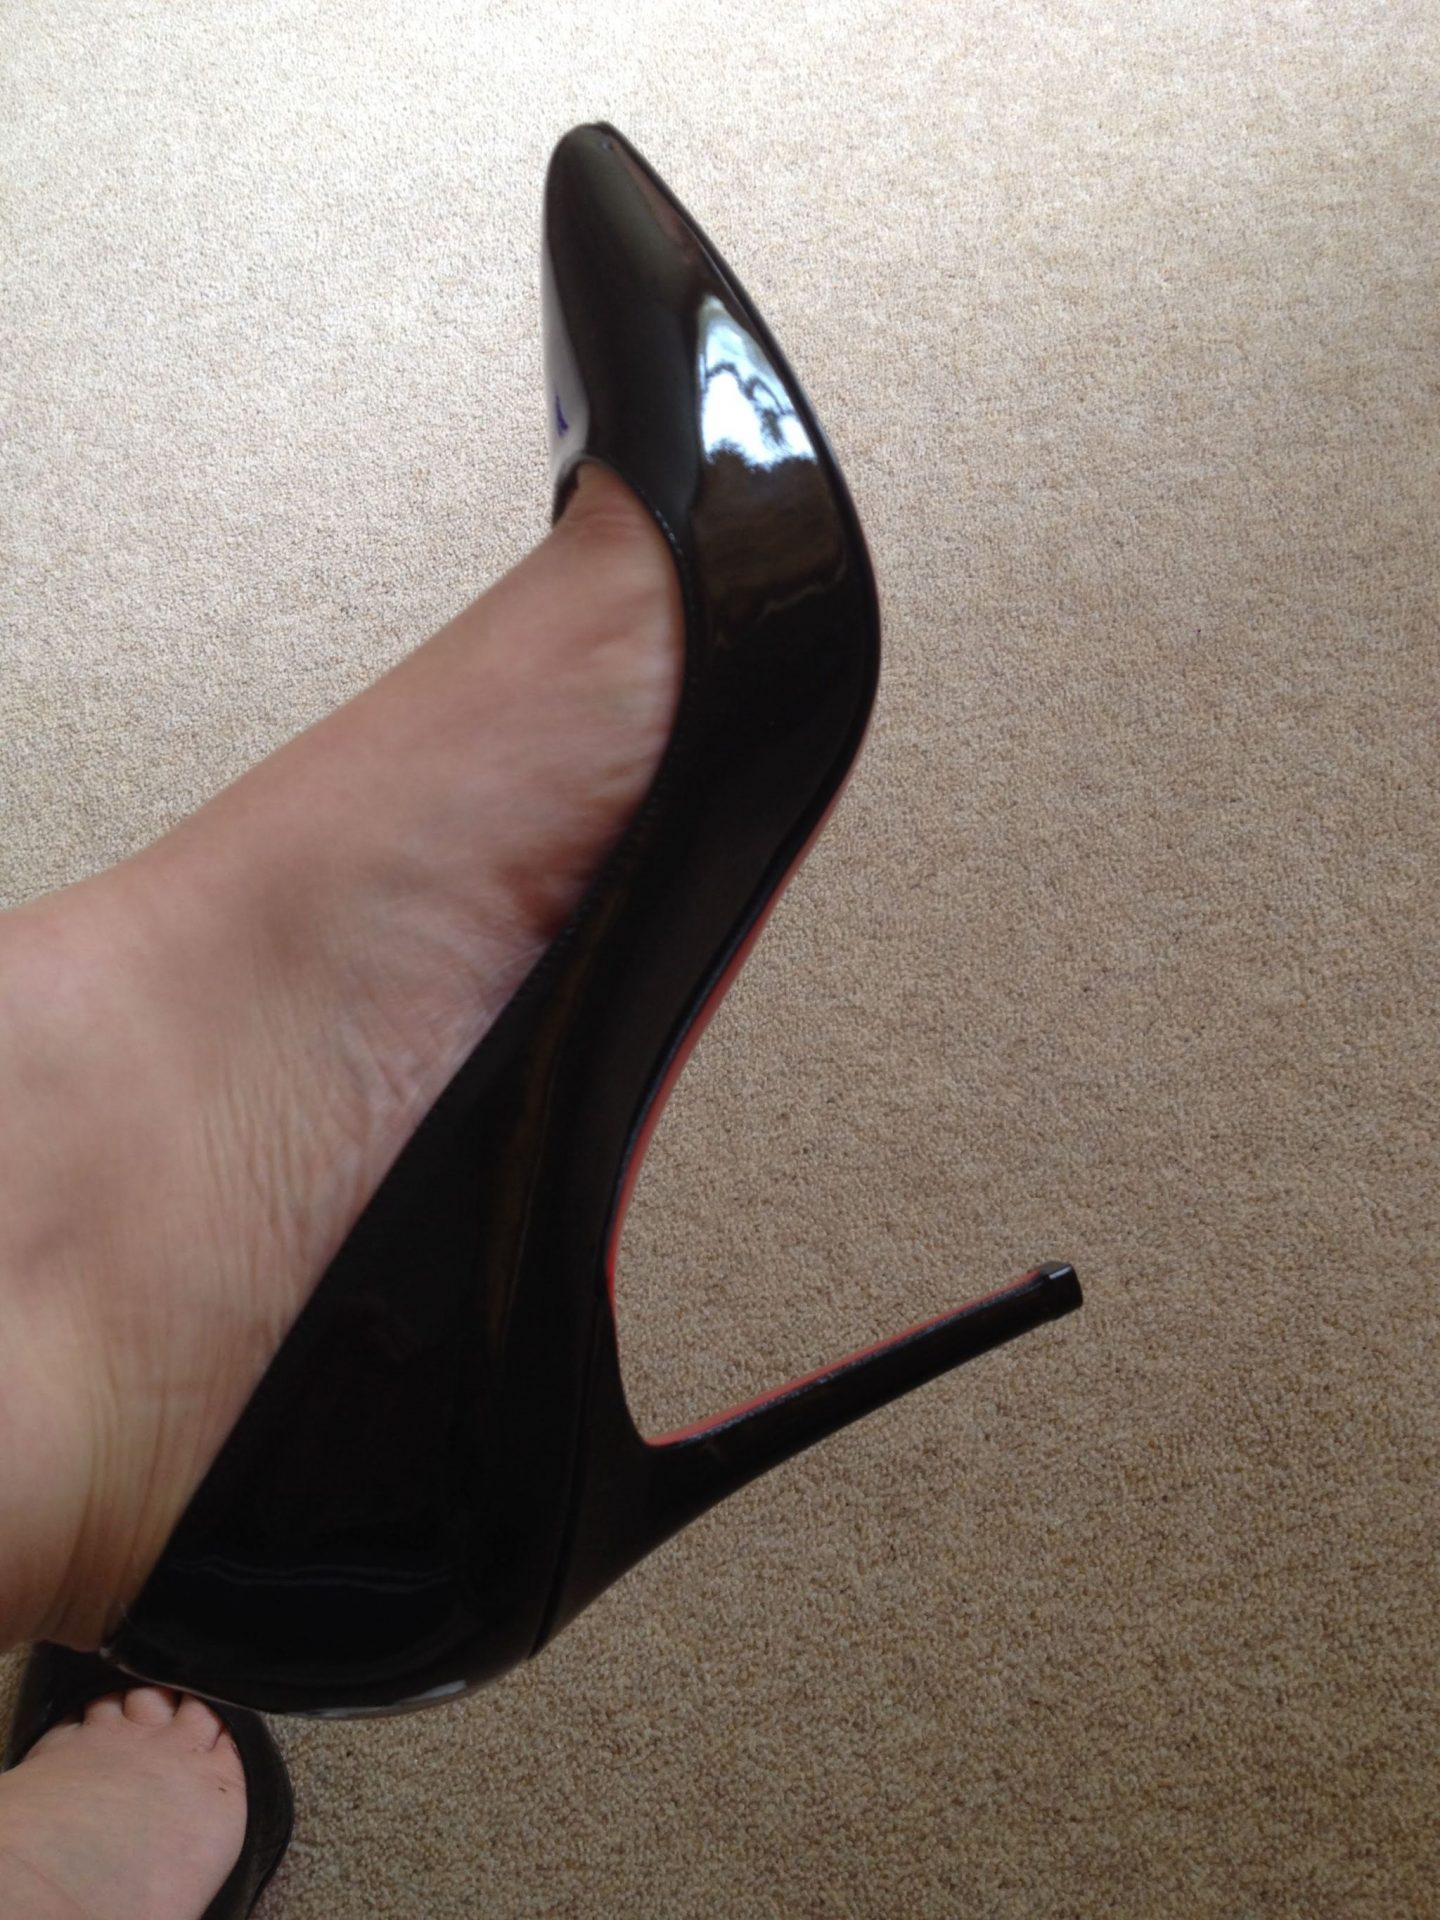 Buying Louboutins: finding the shoes